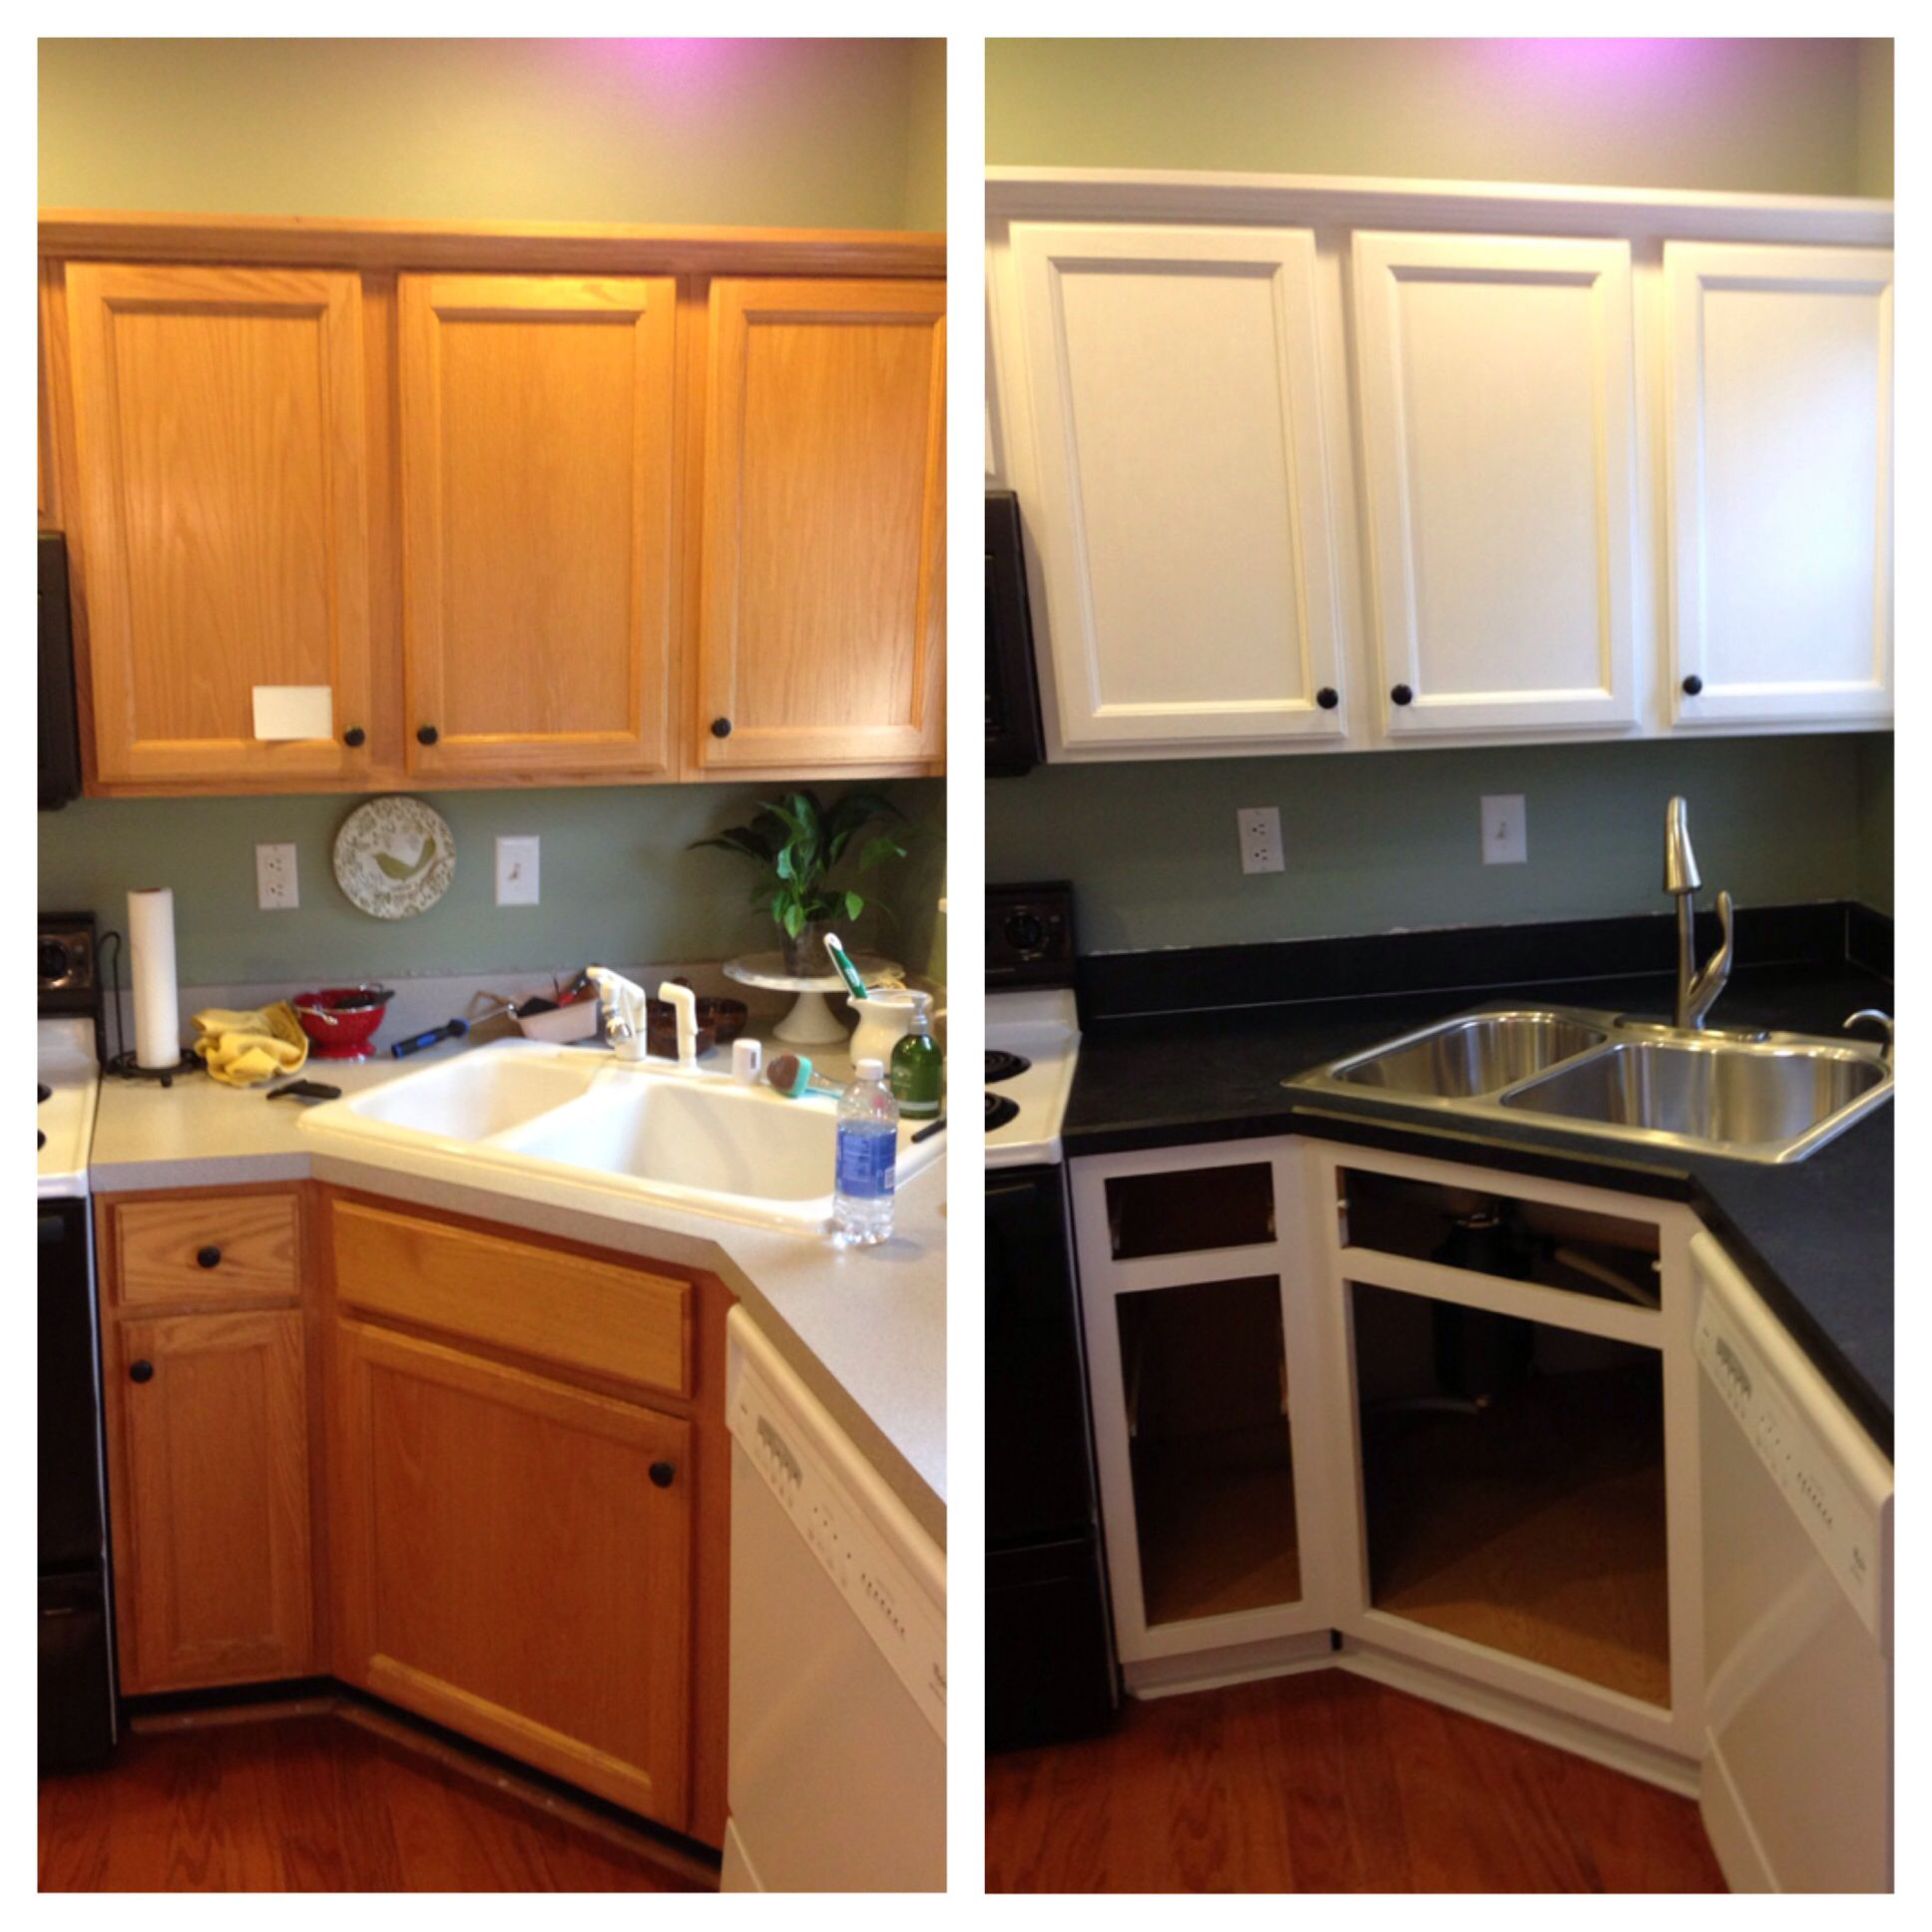 Diy painted builder grade oak cabinets white used for White oak cabinets kitchen